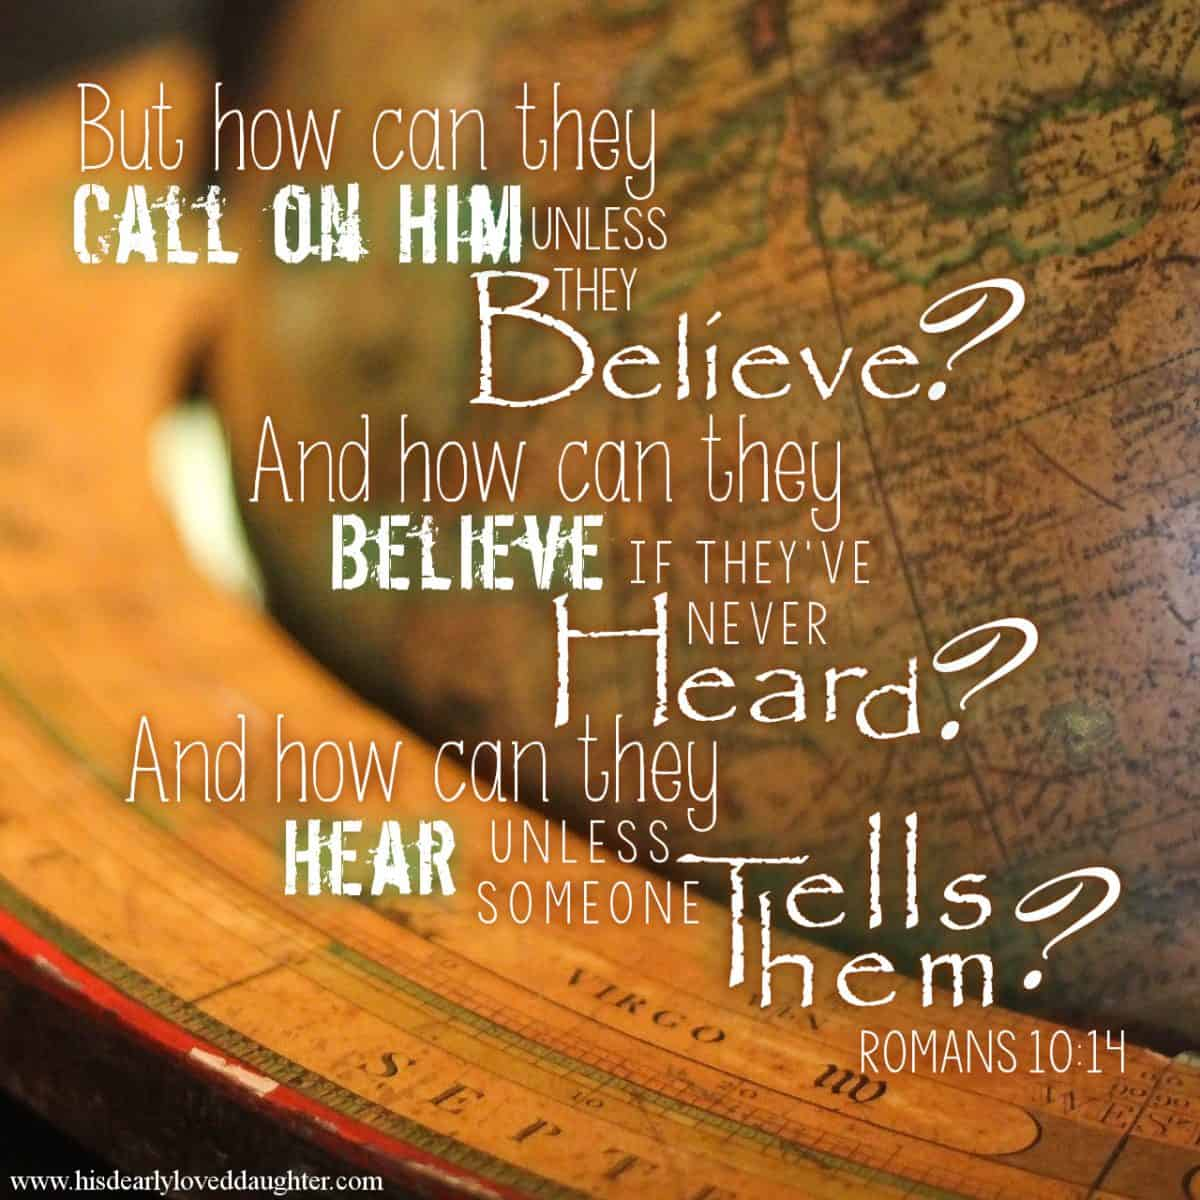 """But how can they call on Him unless they believe? And how can they believe if they've never heard? And how can they hear unless someone tells them?"" Romans 10:14"